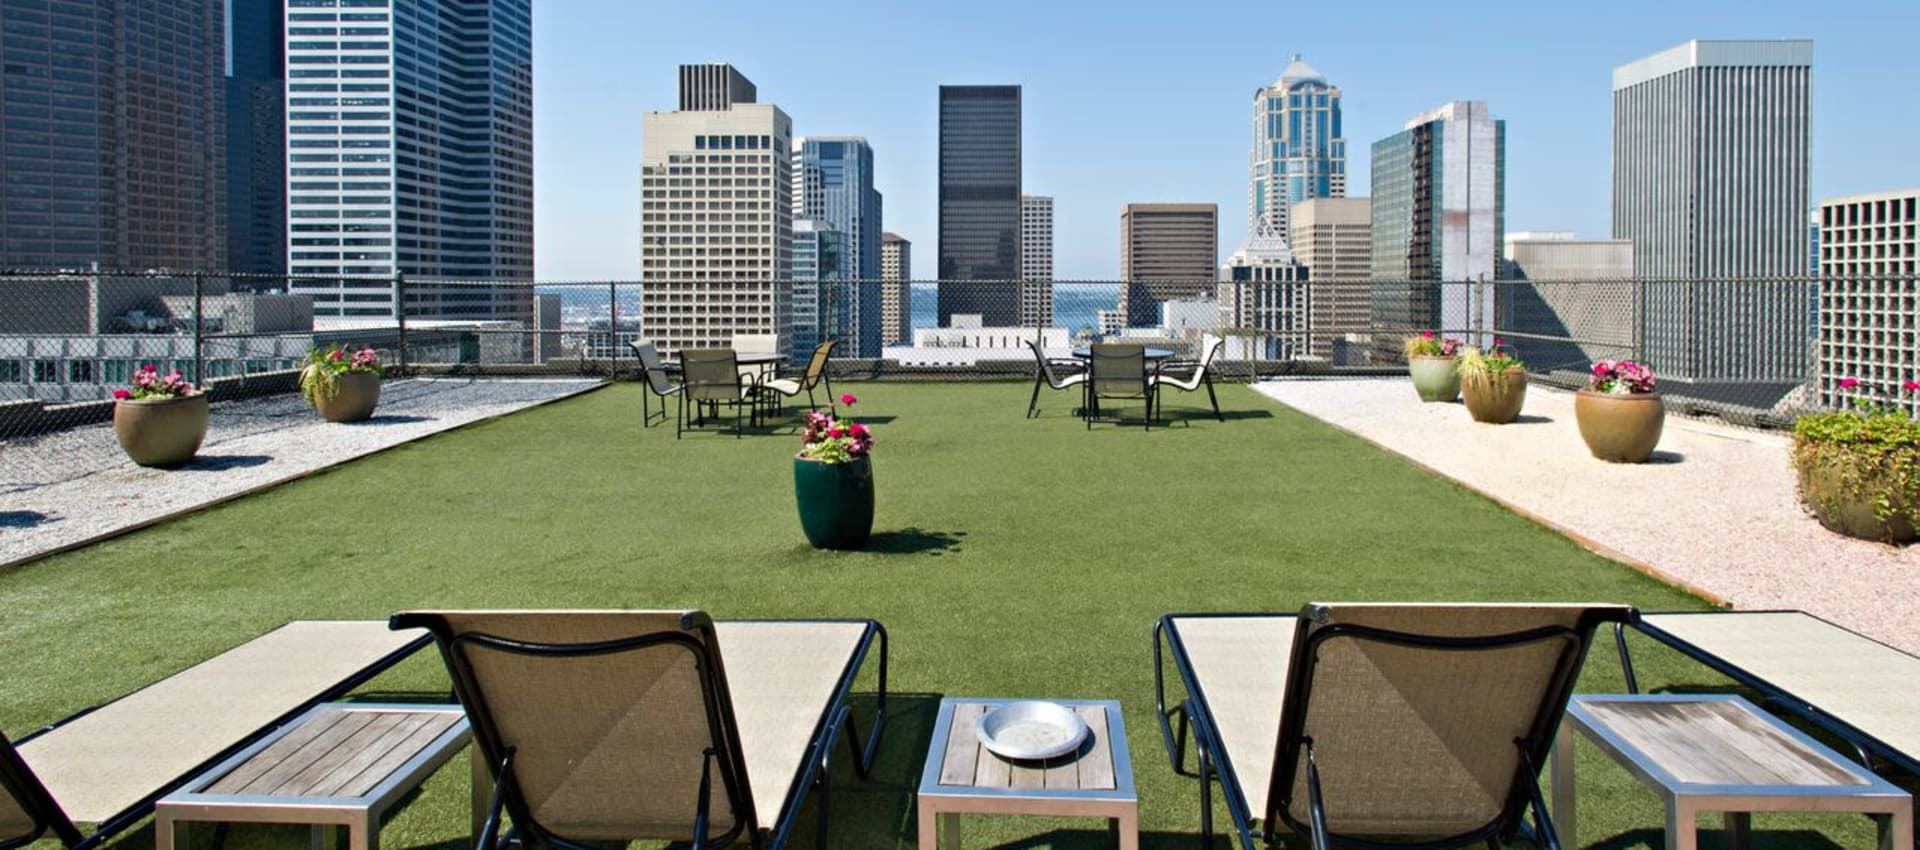 Rooftop deck on a sunny day at The Mill at First Hill in Seattle, Washington